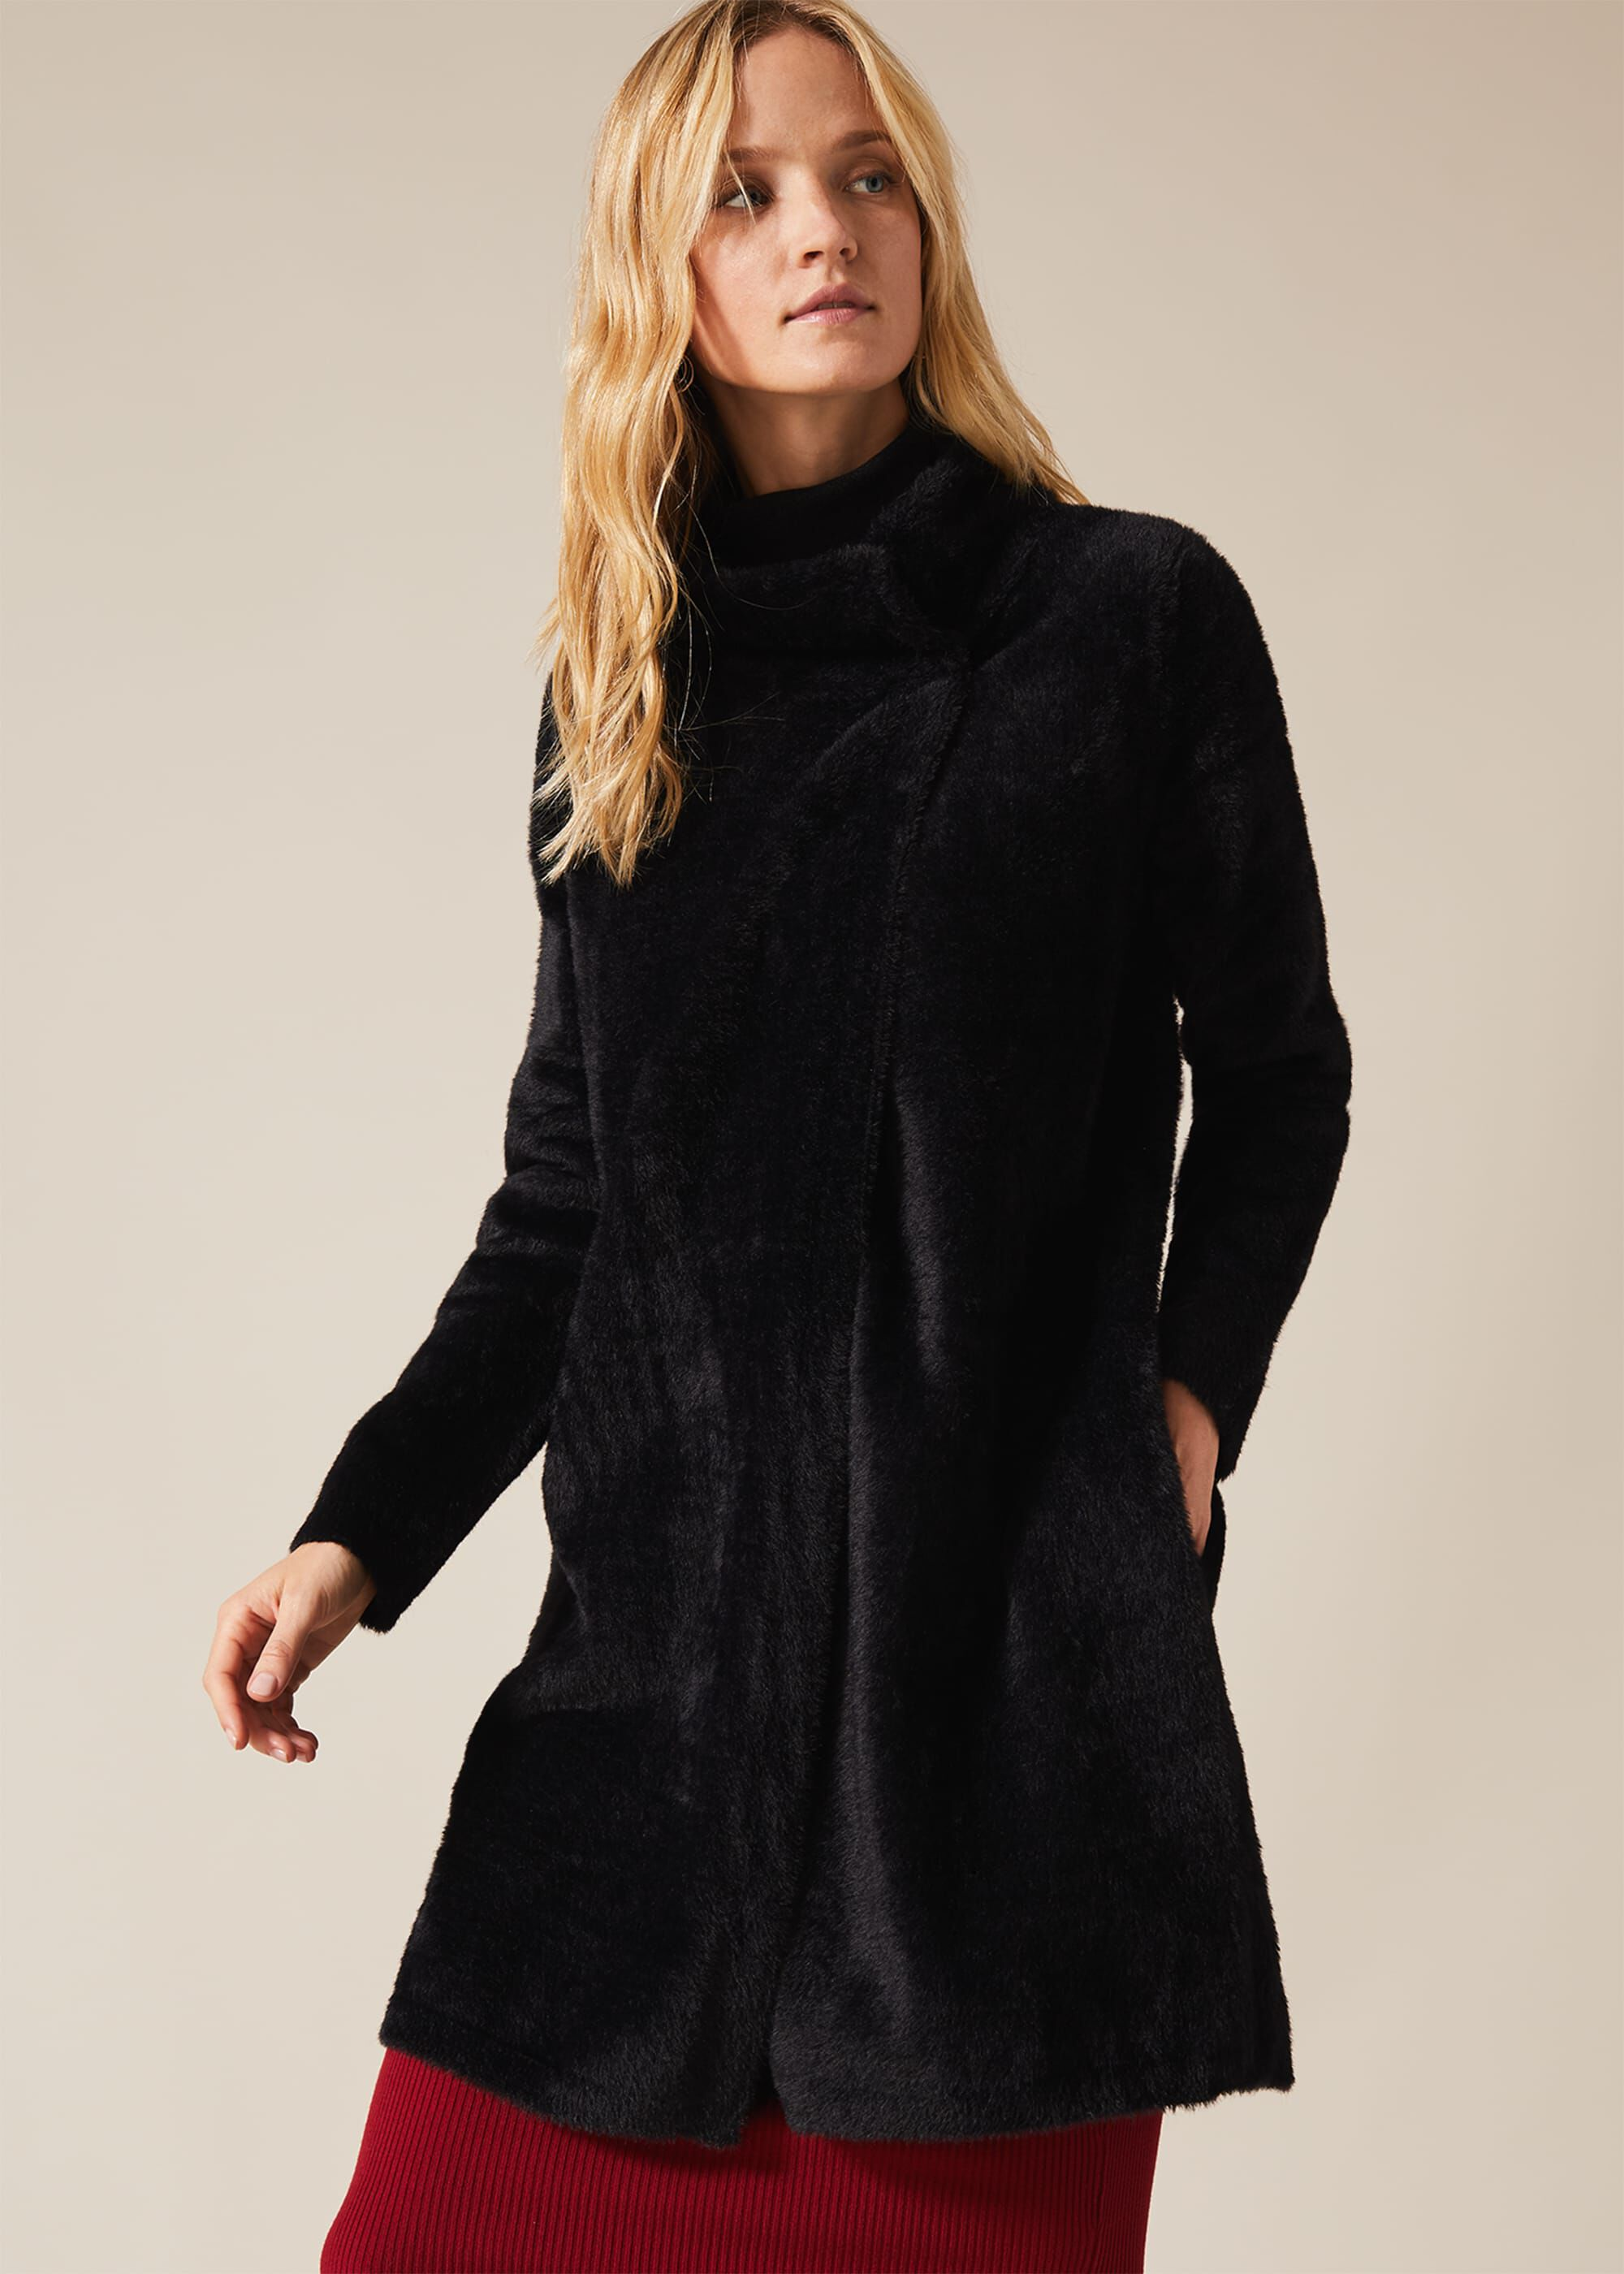 Vintage Coats & Jackets | Retro Coats and Jackets Phase Eight Fiona Fluffy Knit Coatigan Black £85.00 AT vintagedancer.com